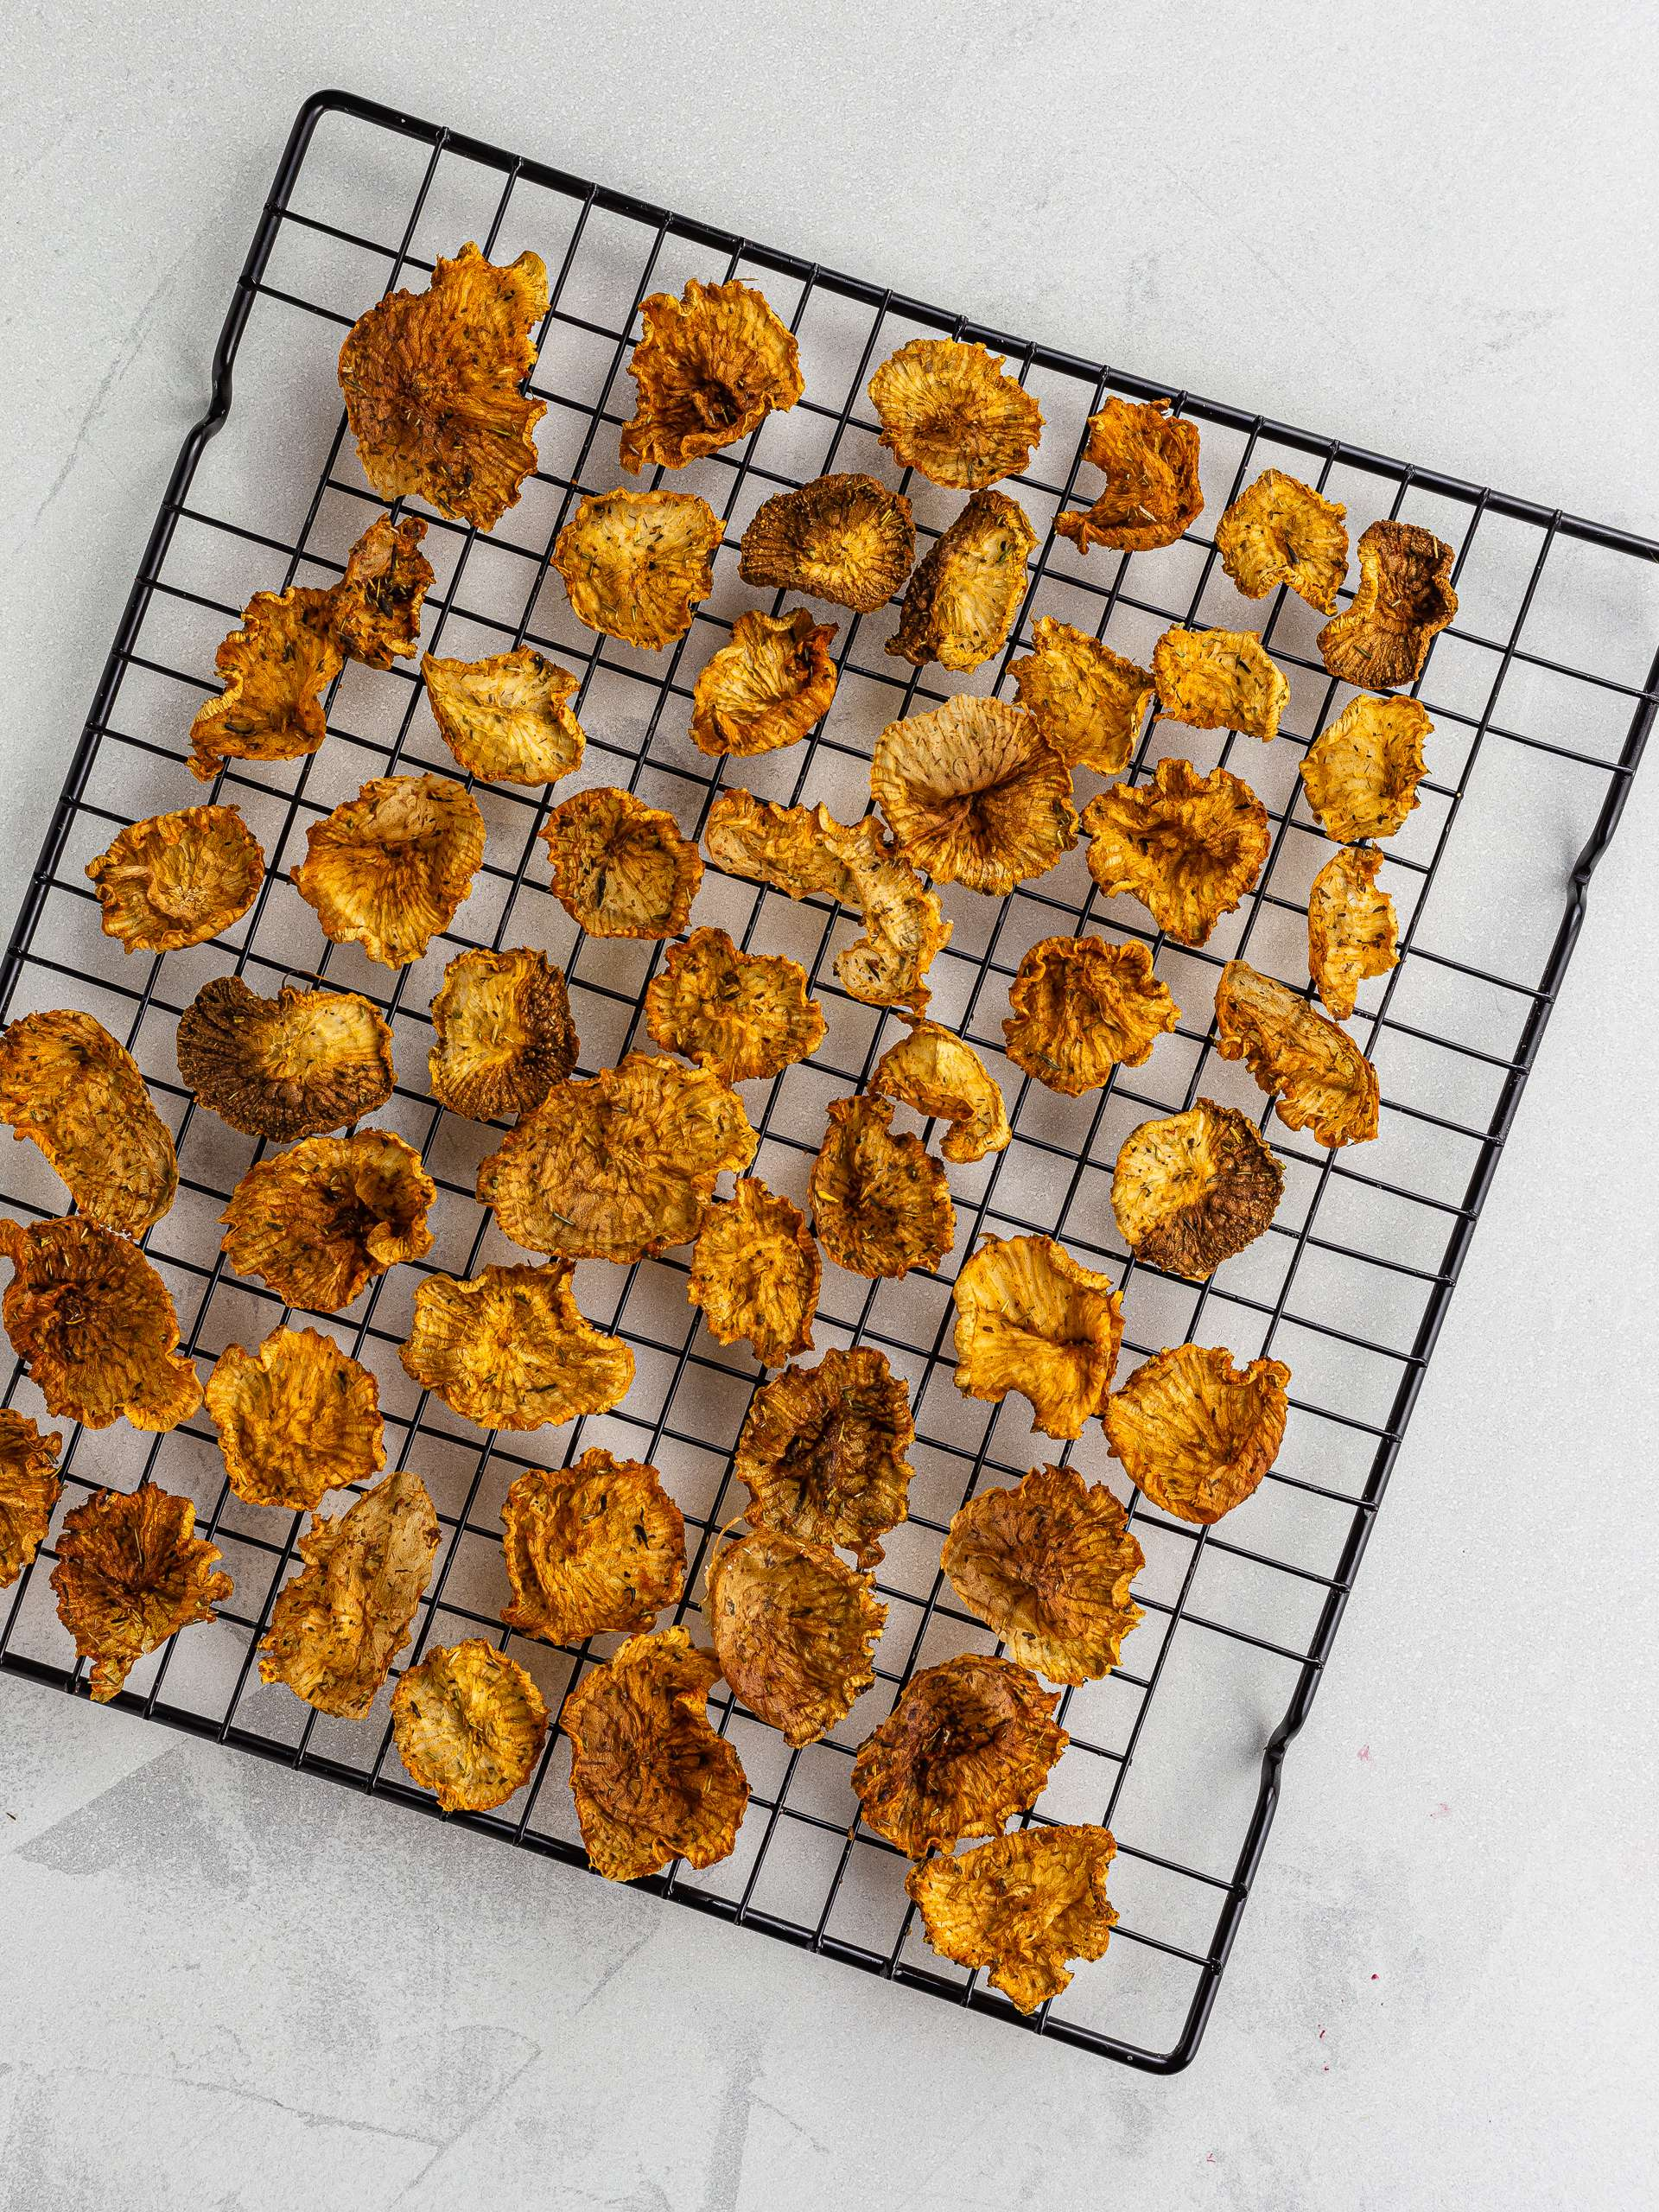 oven-baked daikon chips on a rack